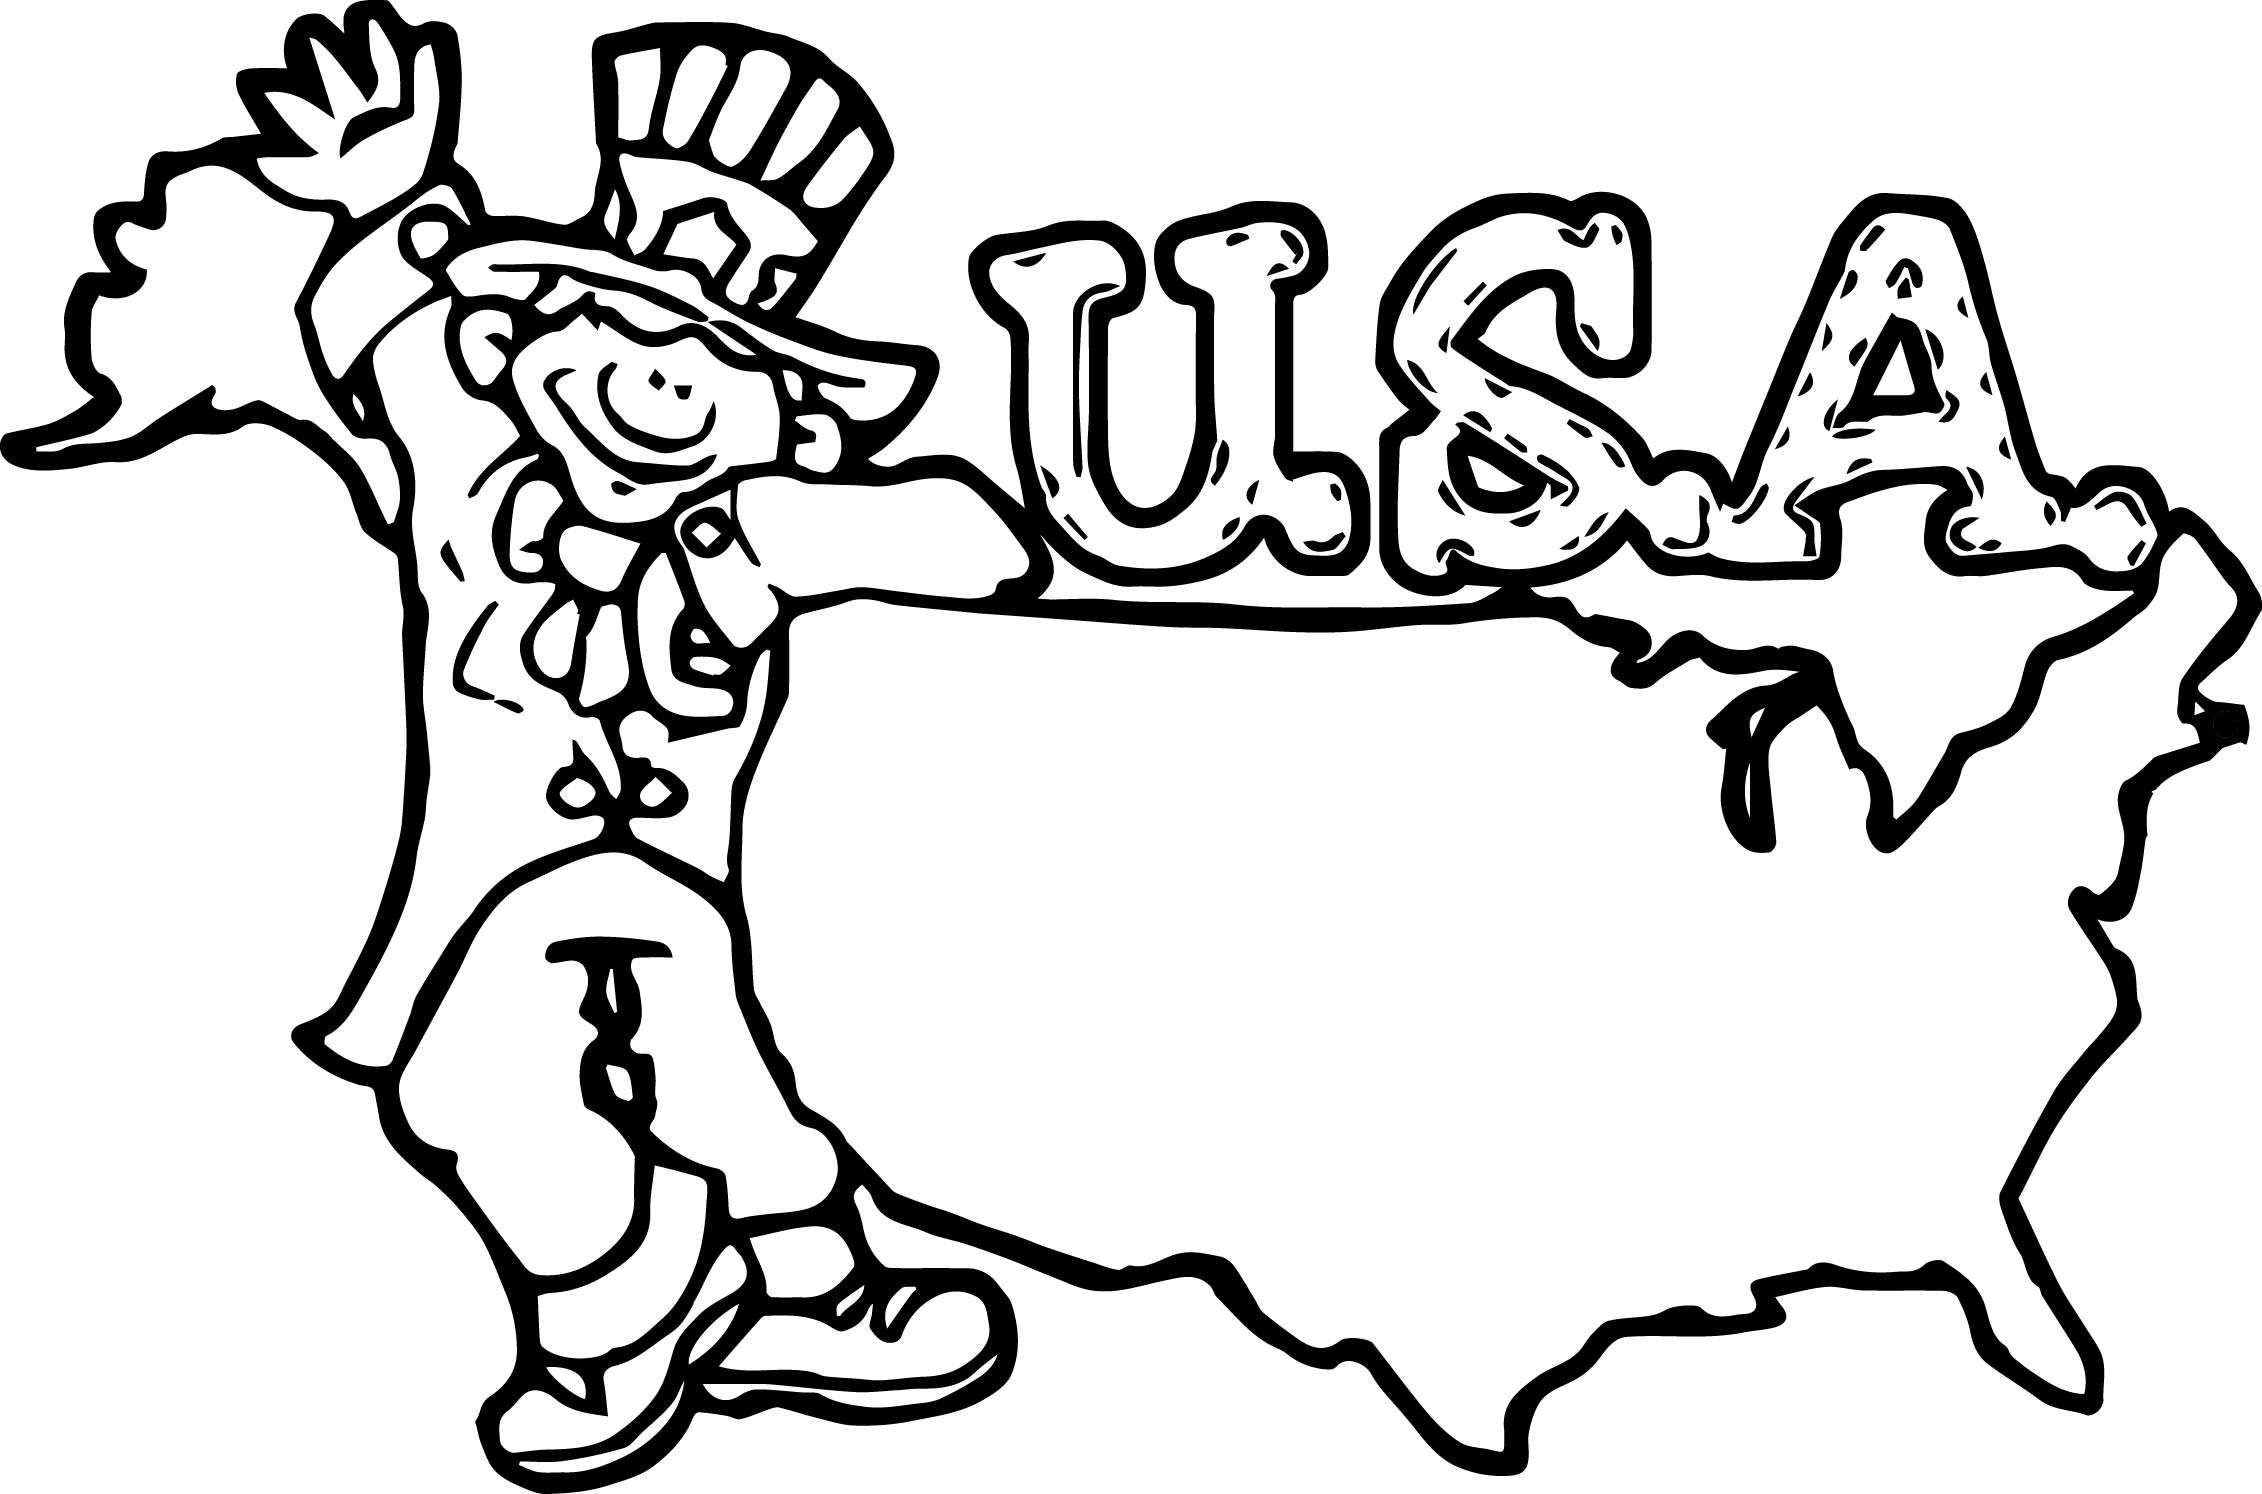 American Revolution Coloring Pages Pdf : American revolution uncle sam happy birthday america